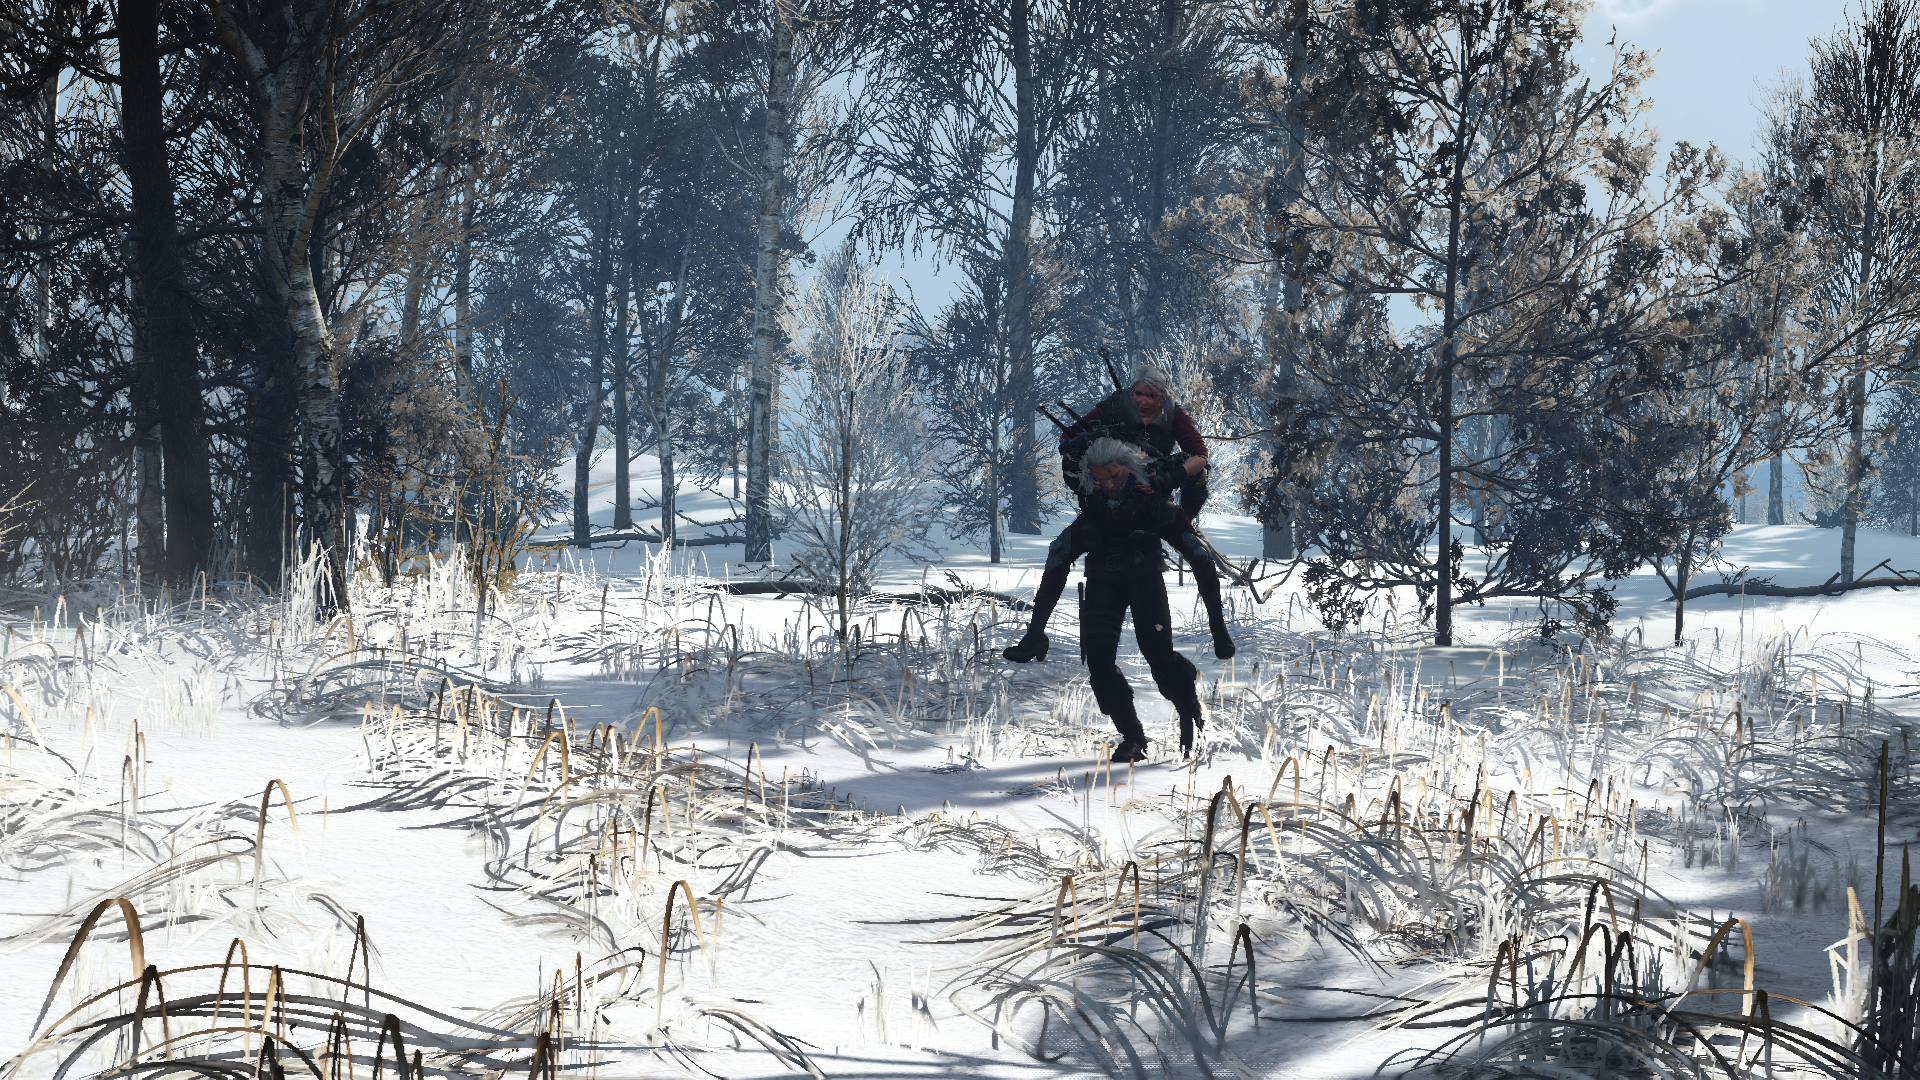 The Witcher 3 18.08.2019 22_50_07.png - Witcher 3: Wild Hunt, the